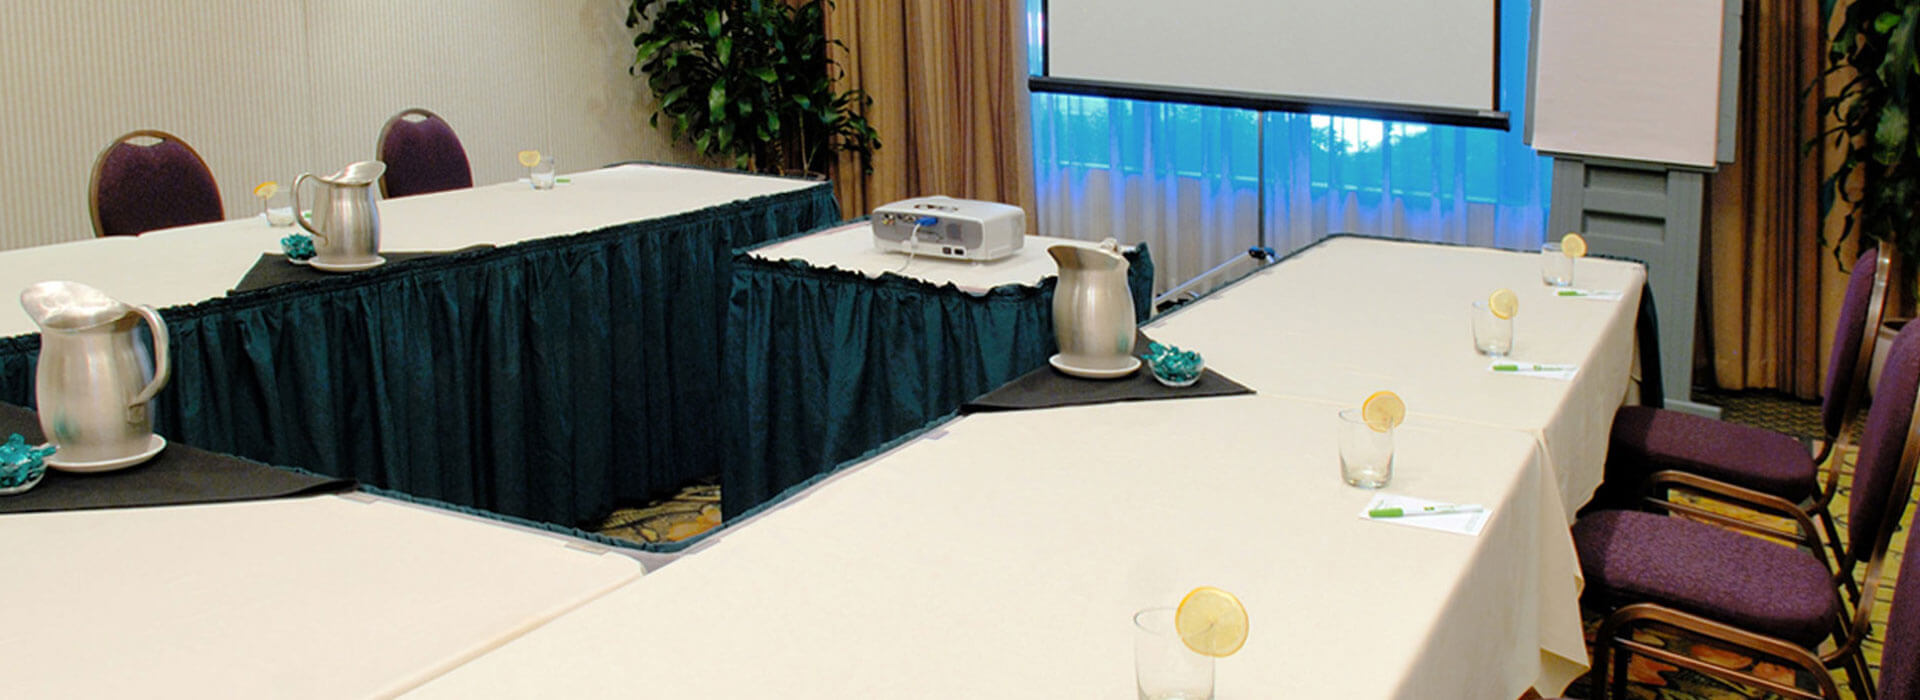 Conference and meeting room at Holiday Inn North Vancouver